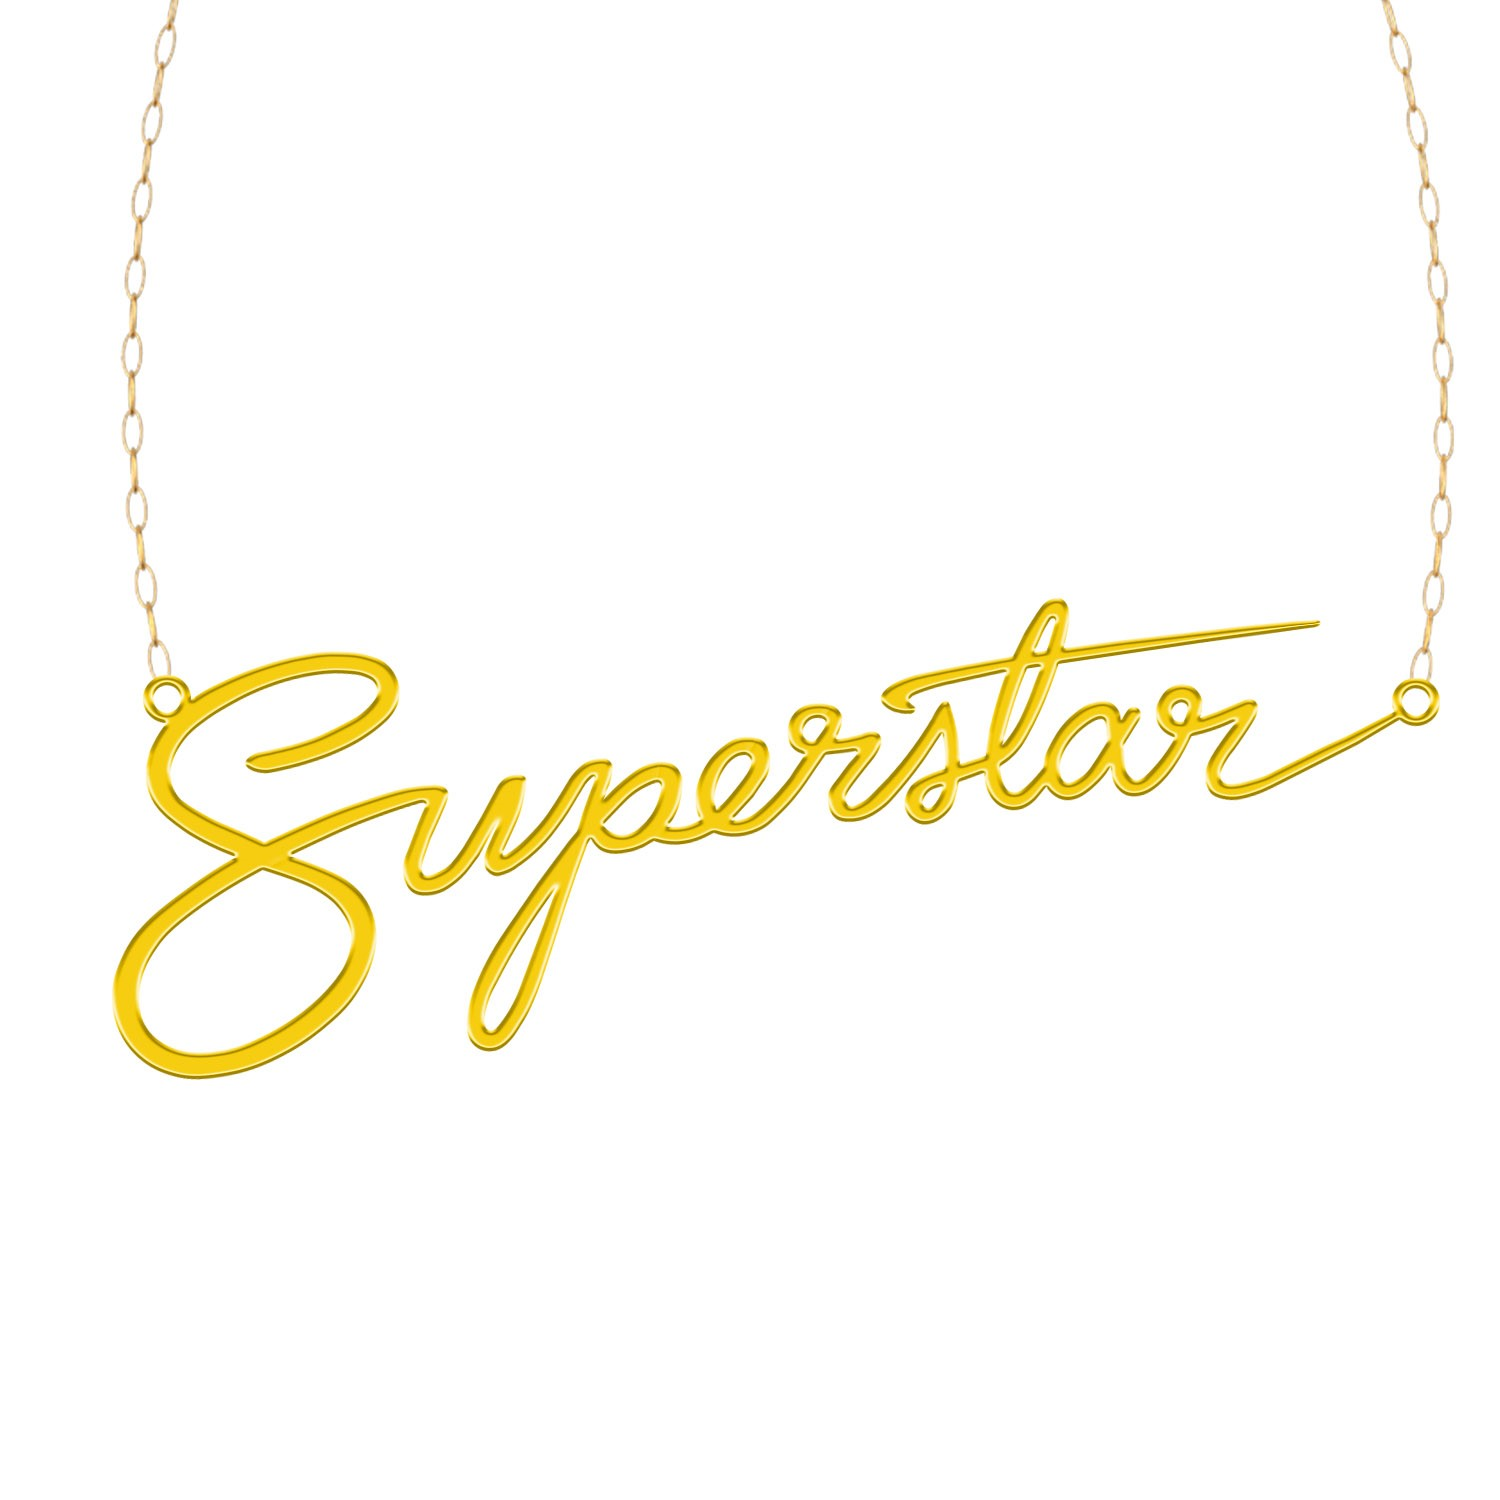 Limited Edition Superstar Necklace